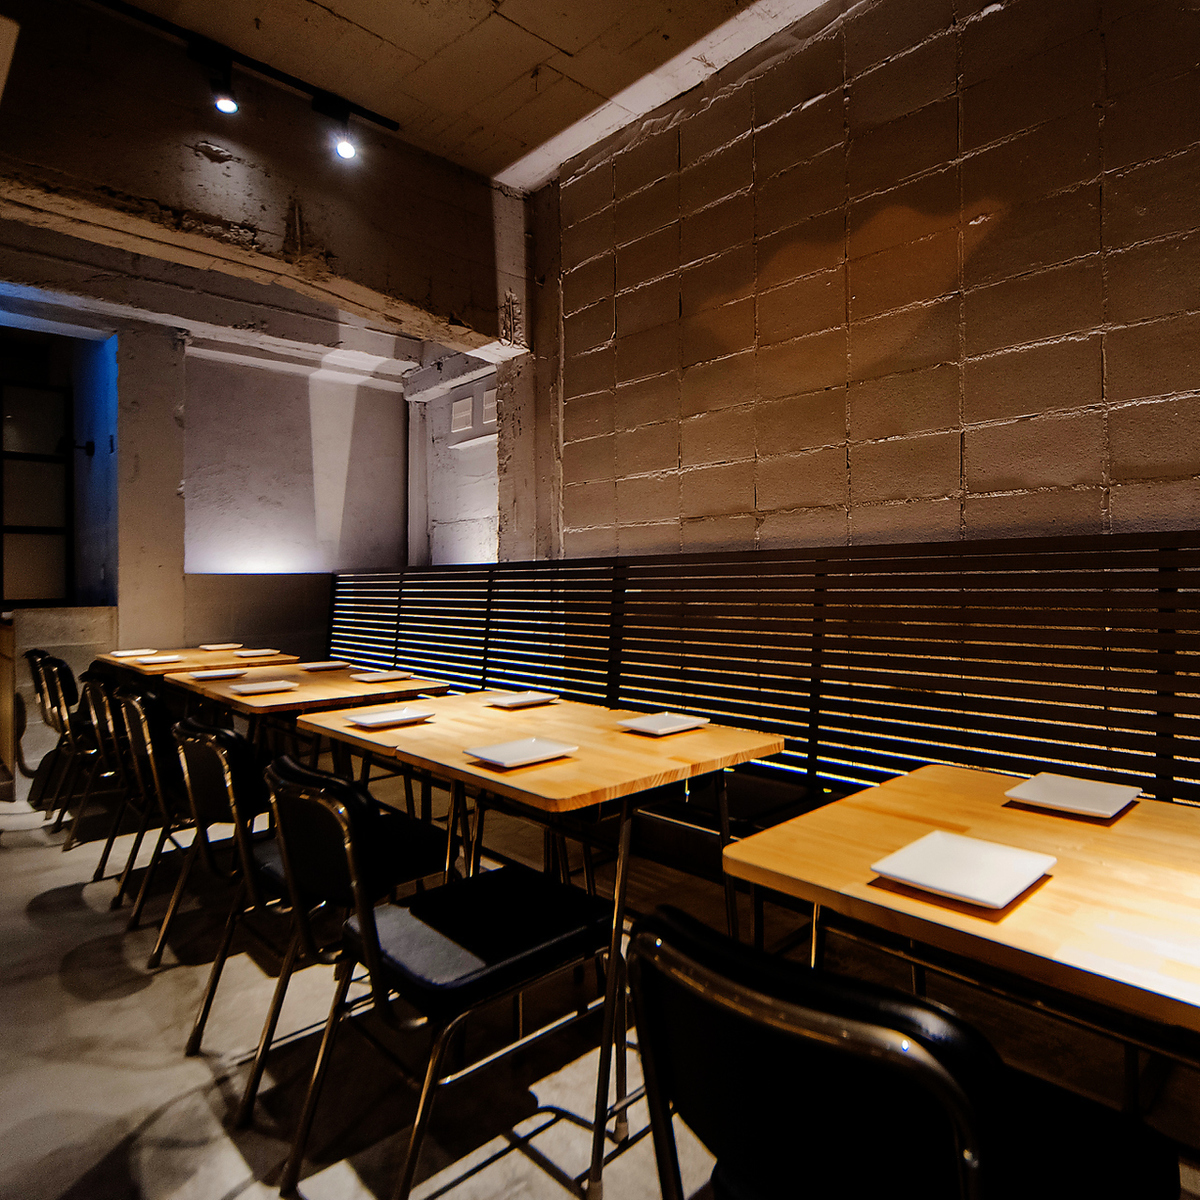 Dining Benchesheets and chair-type table seats suitable for main use / 3 to 12 people maximum